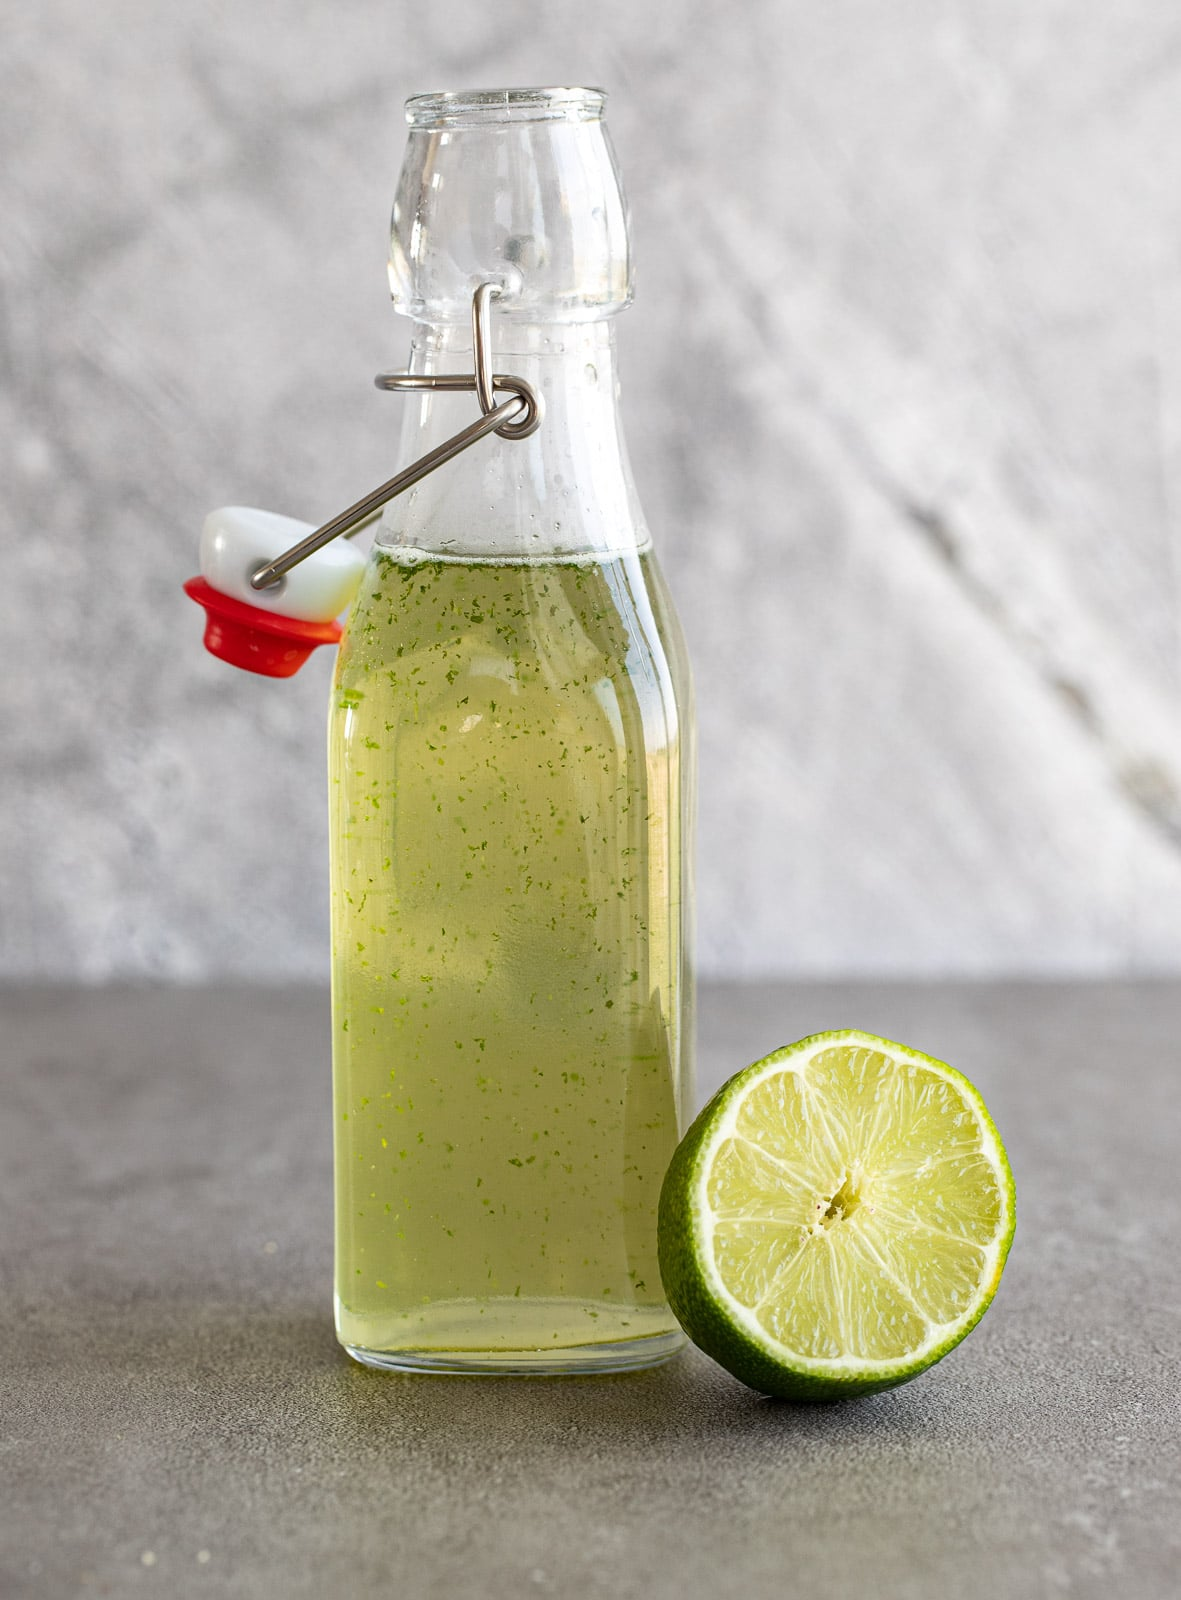 lime simple syrup in a glass jar with stopper.